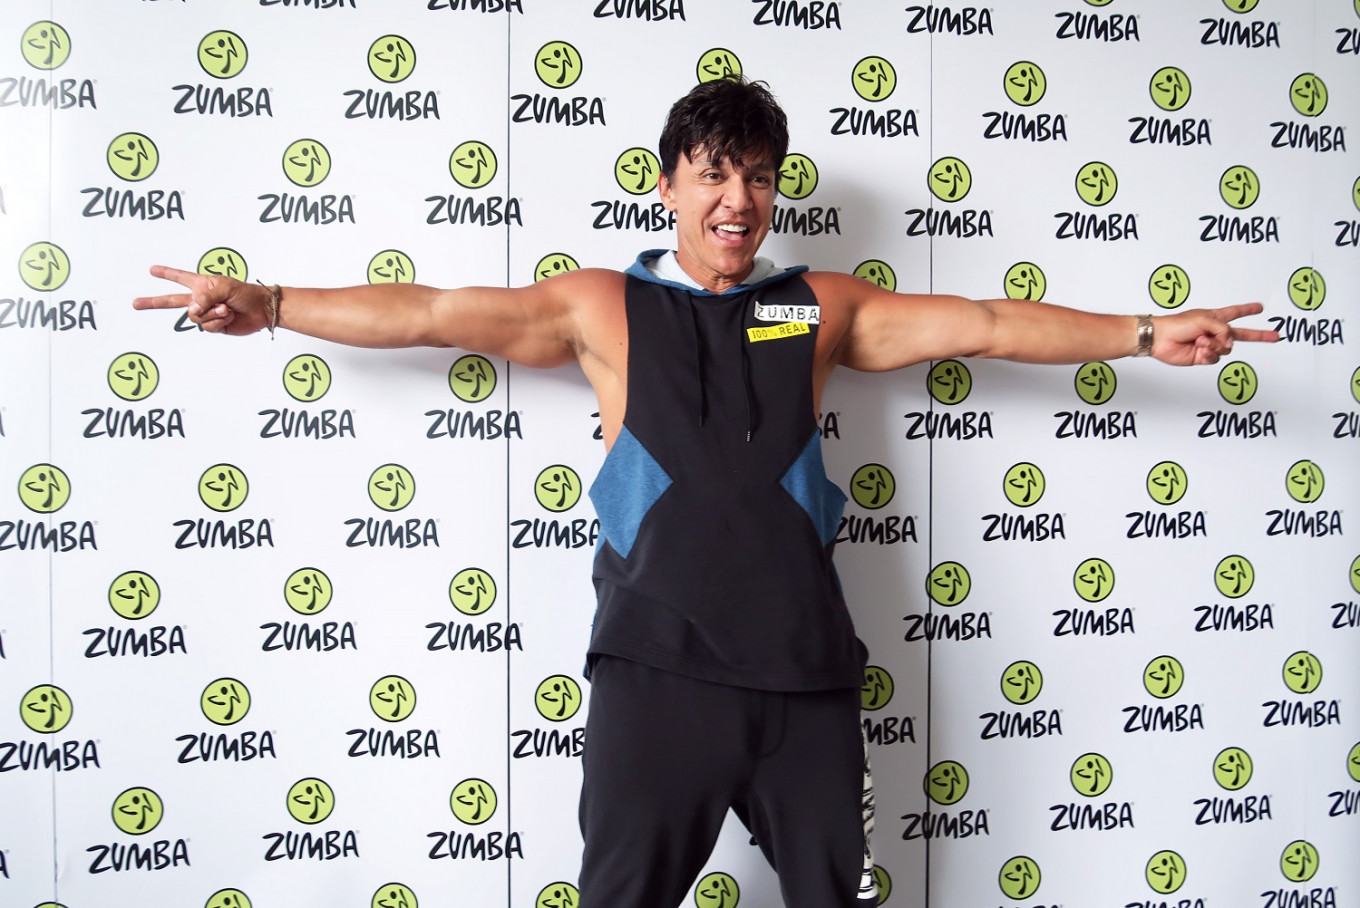 Zumba not a weight-loss program, says founder